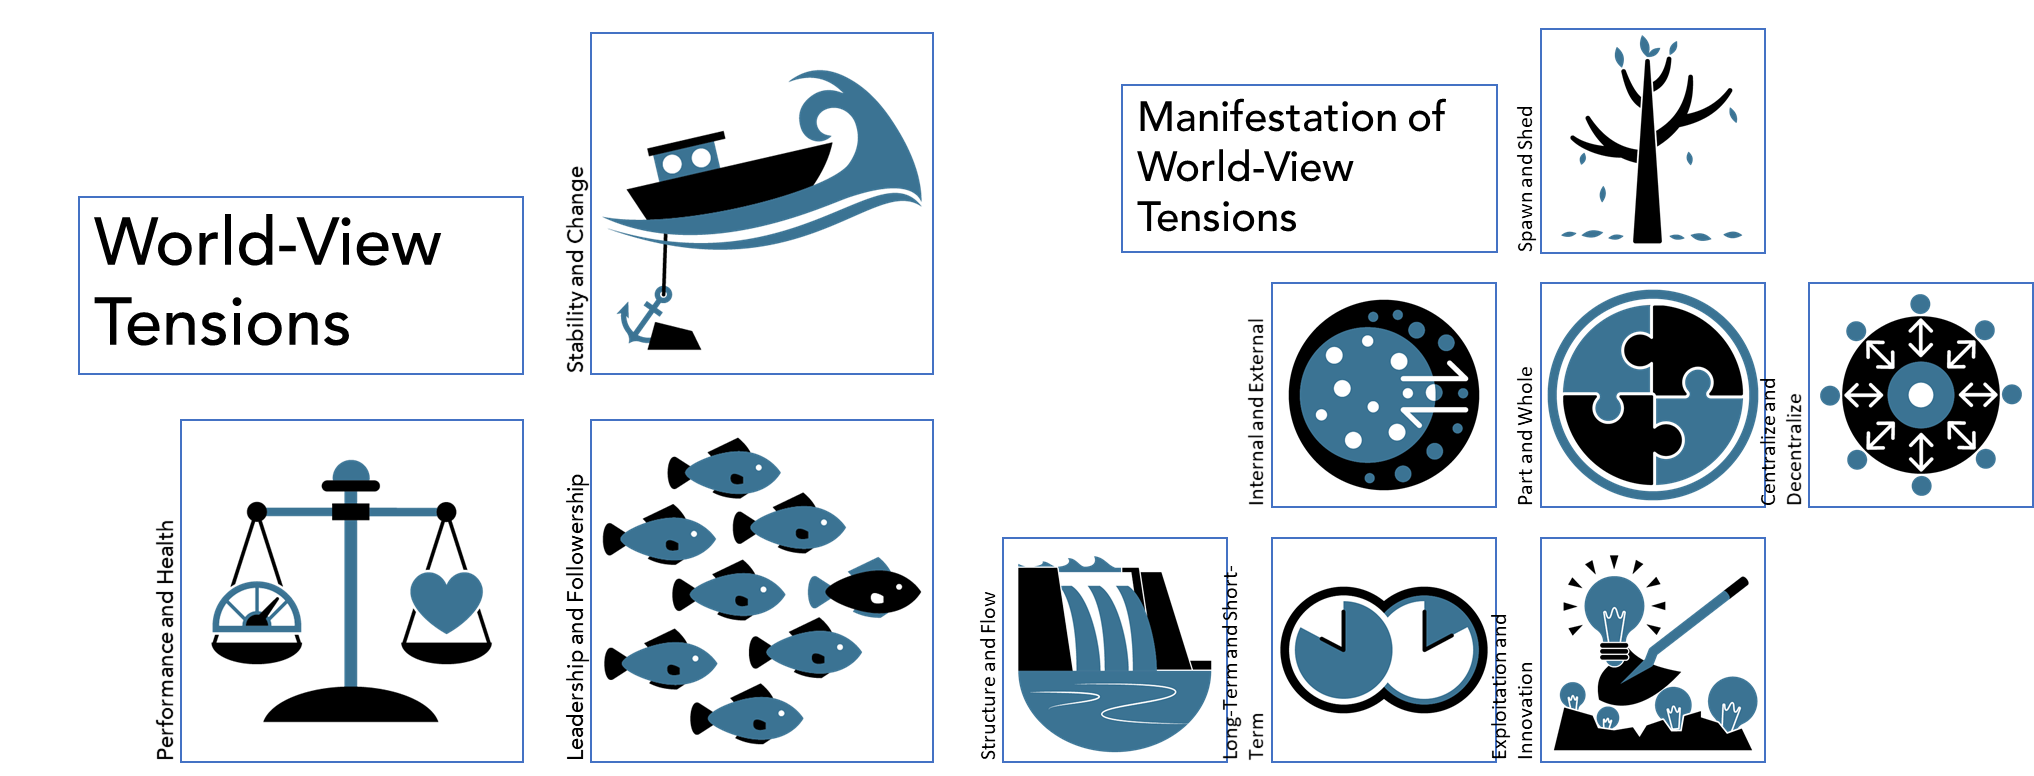 Structural Agility - Manifestation of world-view tensions